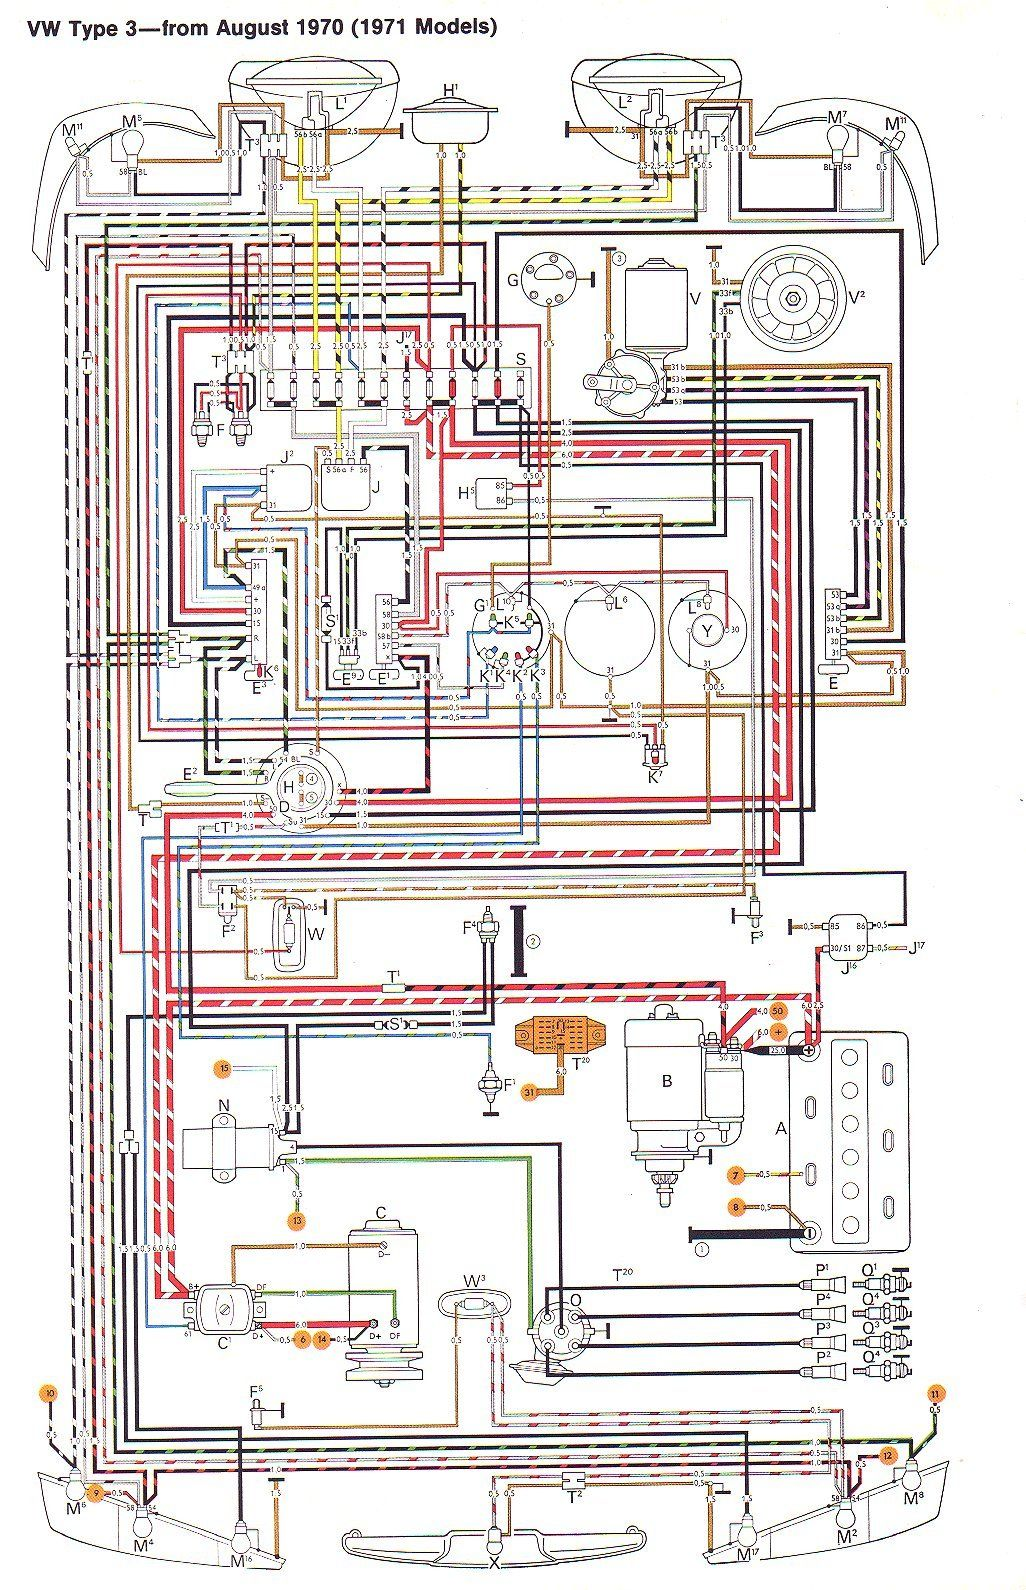 71 Vw T3 Wiring Diagram Motor De Vocho Diagrama De Instalacion Electrica Vw Sedan